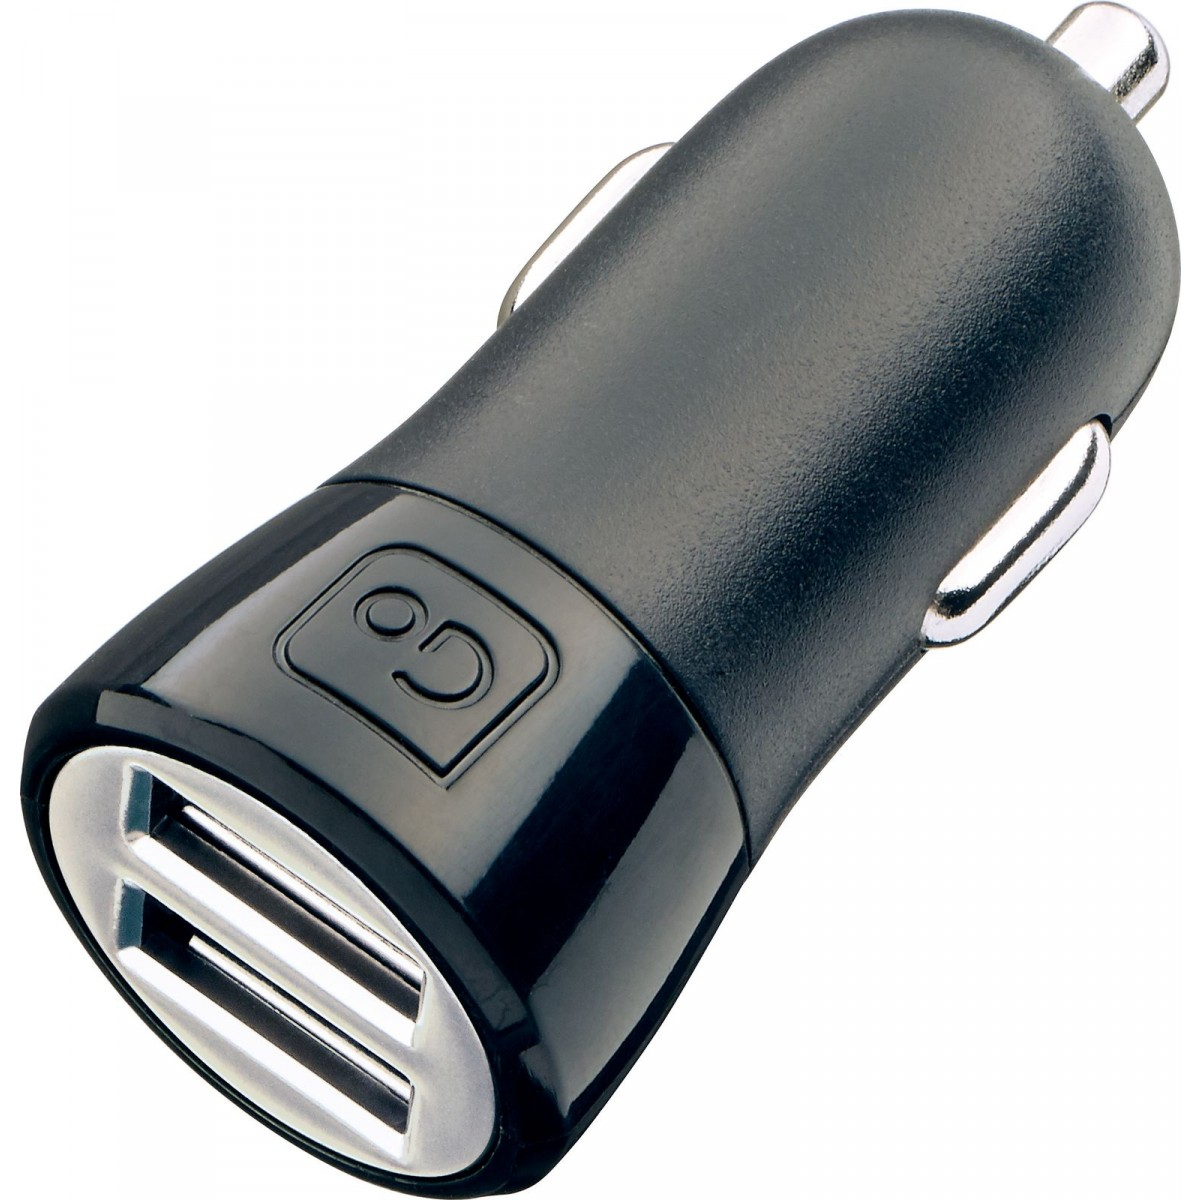 GO TRAVEL CHARGEUR DOUBLE USB VOITURE